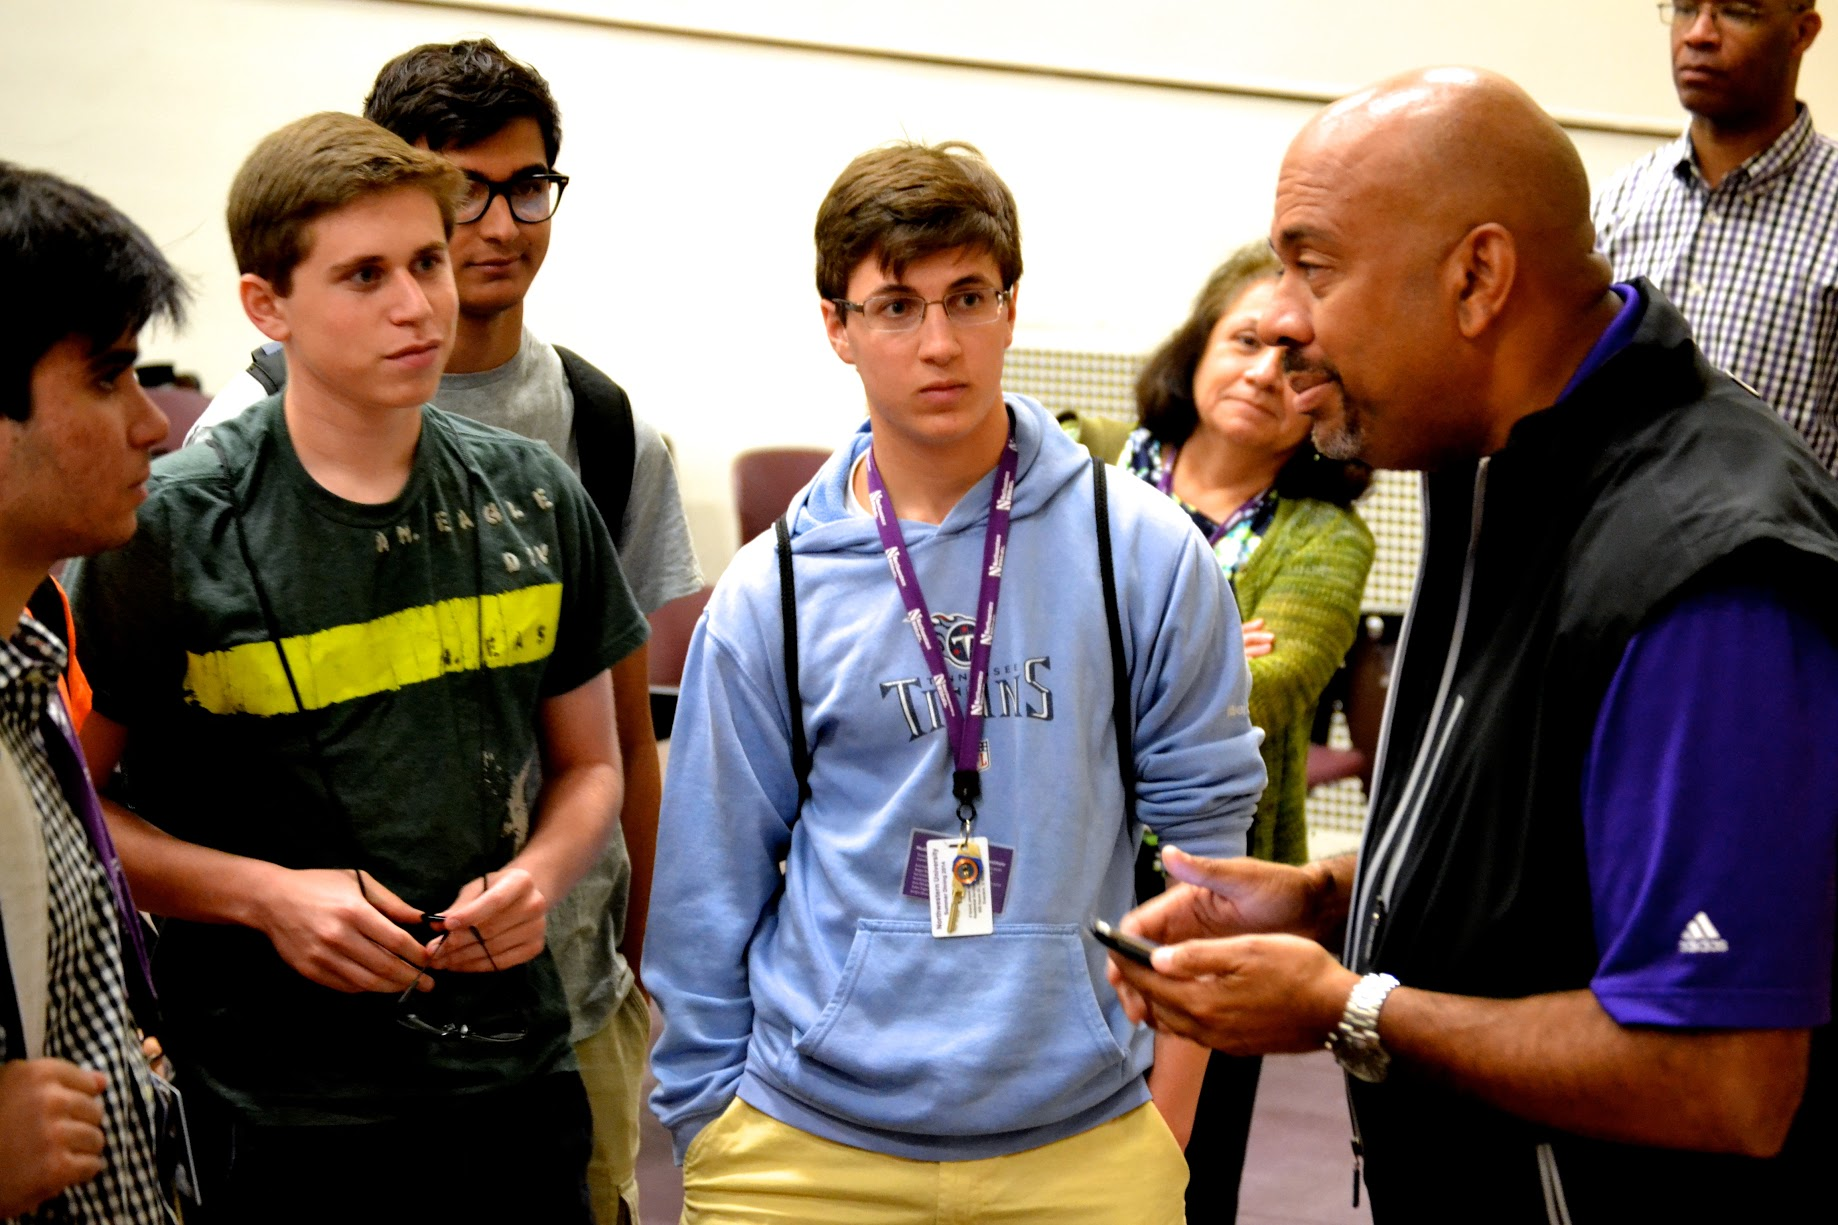 Mike Wilbon fielded questions after his Q-and-A session and kept talking sports during lunch. Listening, from left, are Jimmy Lafakis, Garrett Jochnau, Chris Grismer and Aaron Kaplan. Photo by Remy Afong.